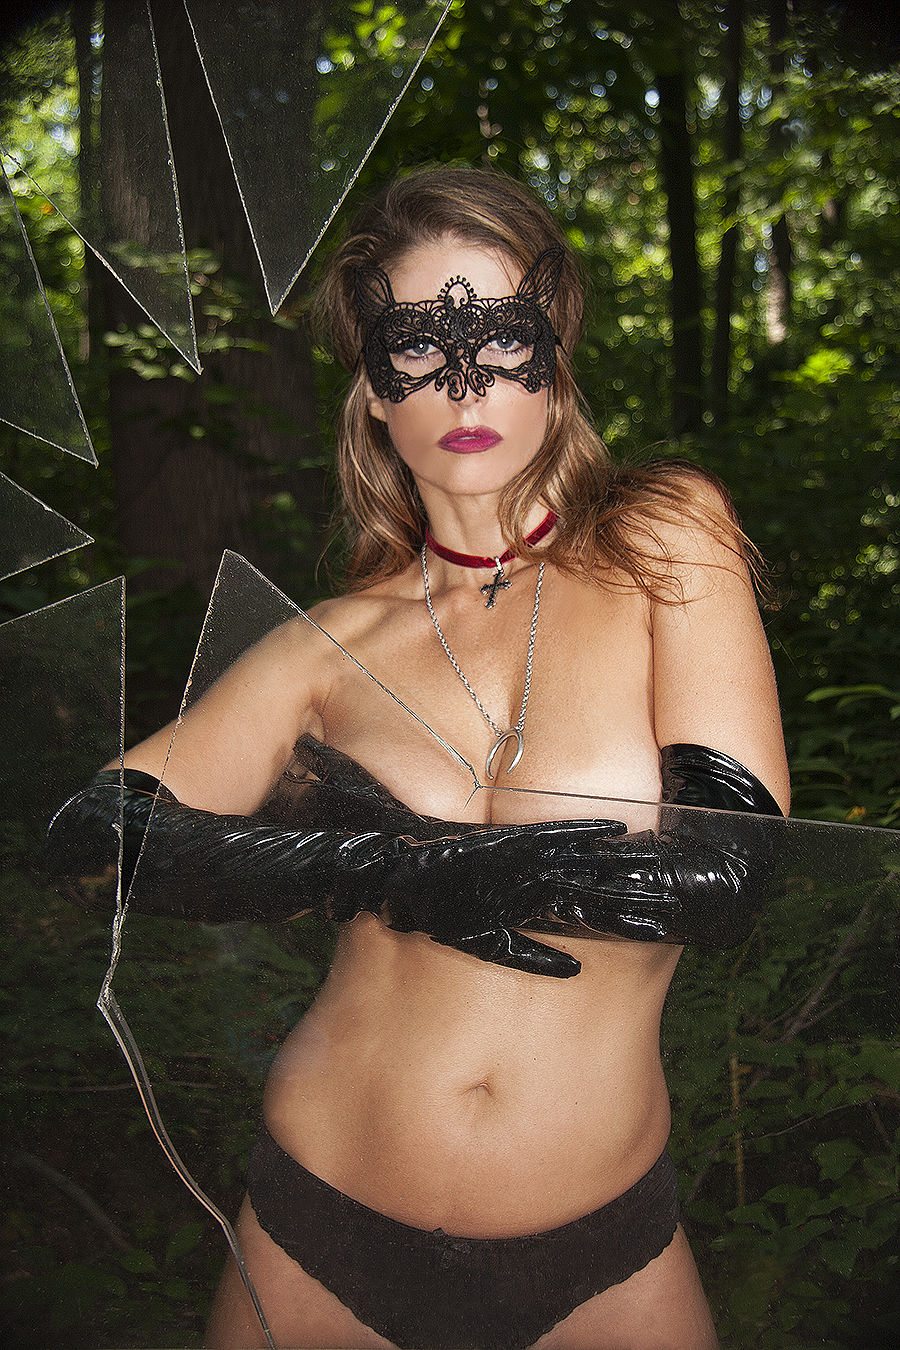 Tony_Ward_Erotica_masked_topless_submissive_broken_glass_outdoors_black_gloves_lace_mask